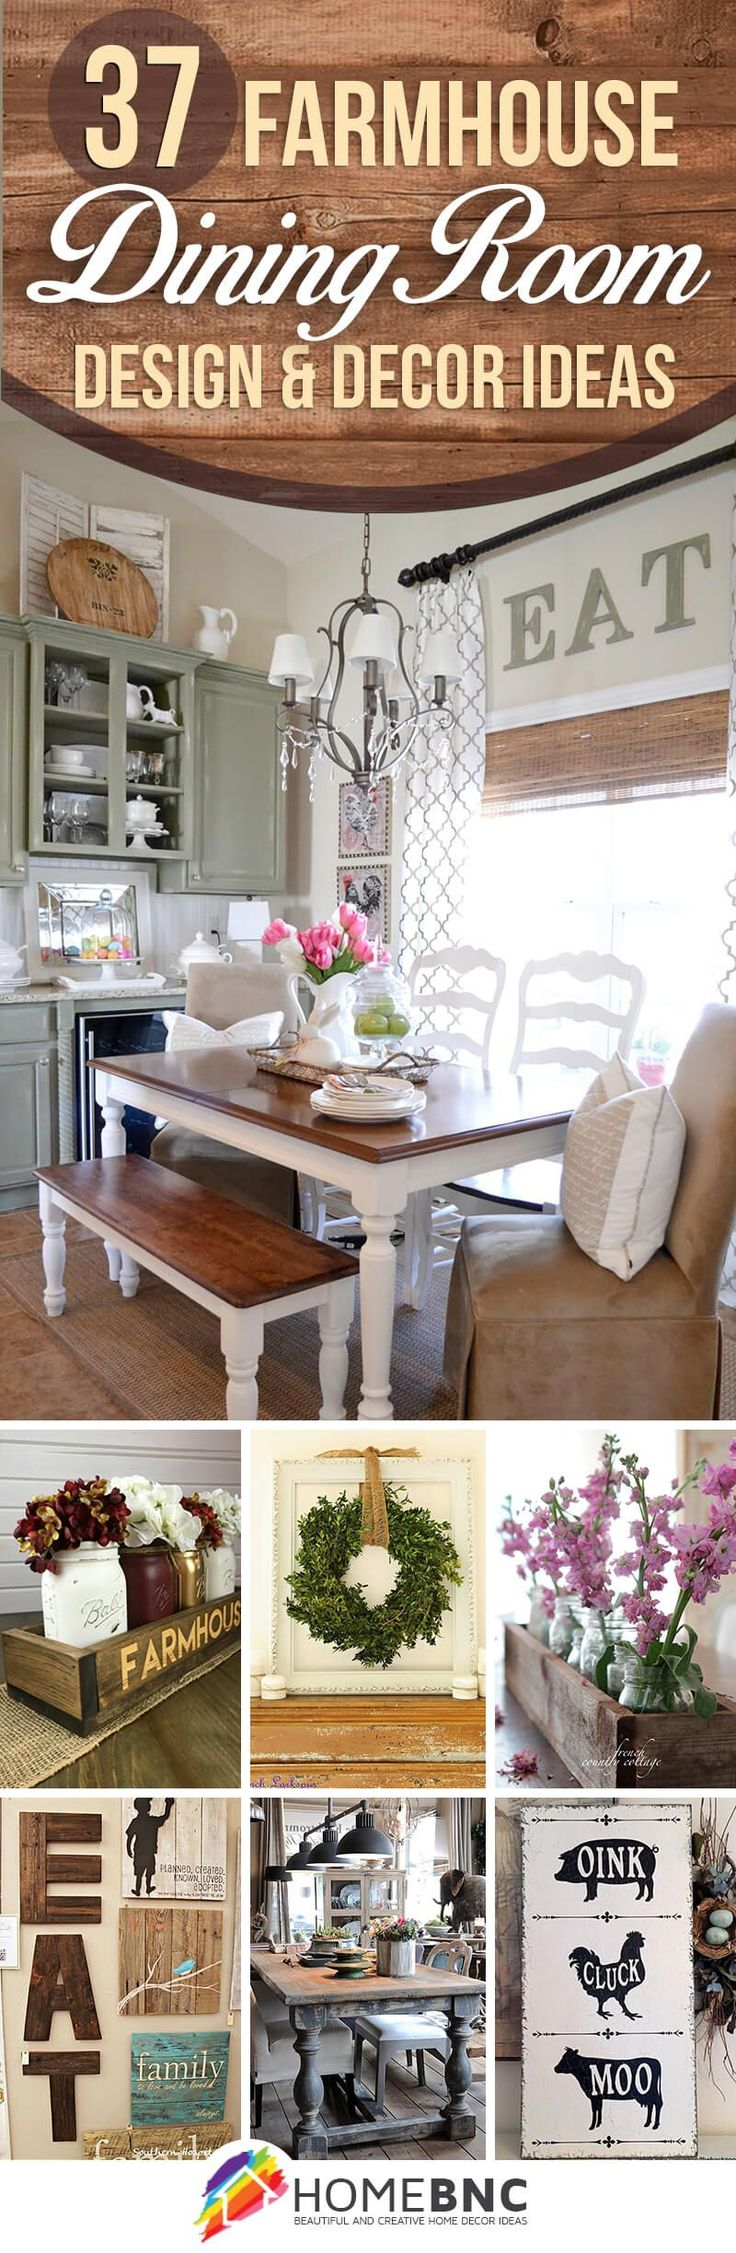 37 timeless farmhouse dining room design ideas that are simply charming - Dining Room Decor Ideas Pinterest